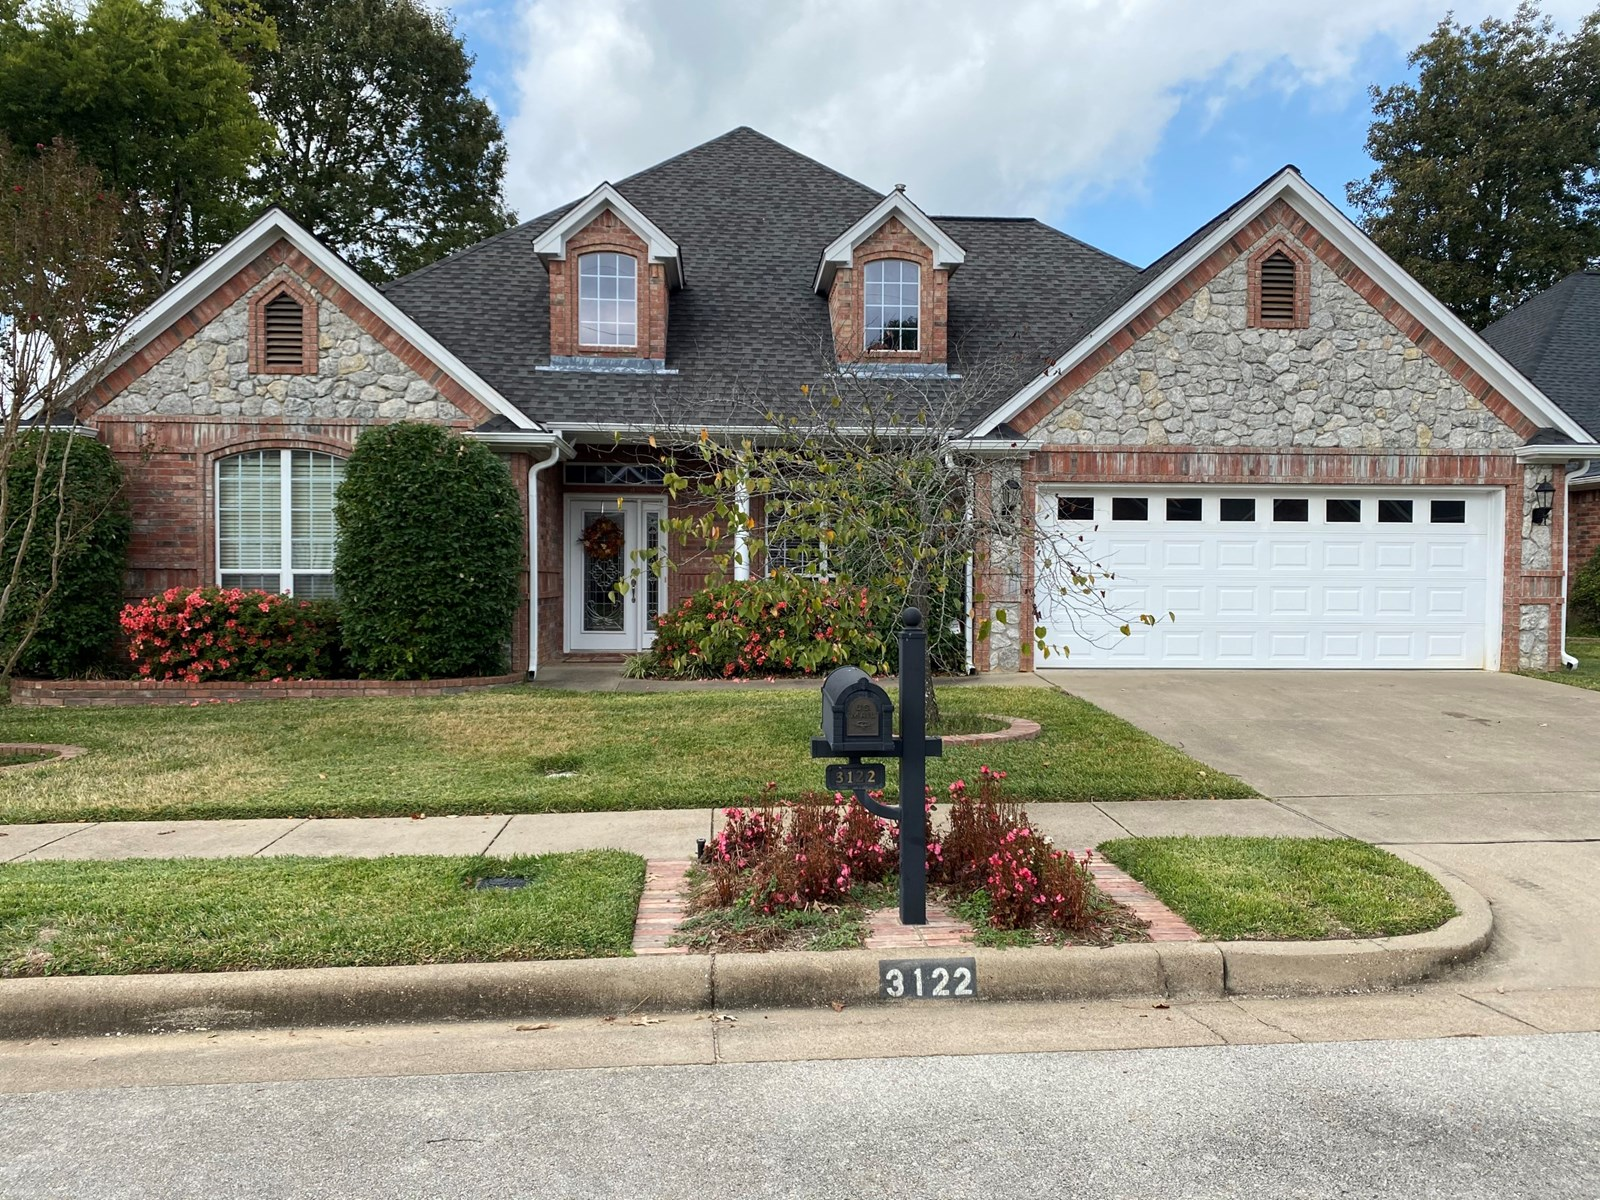 Granbury Court Home for Sale in Tyler Texas Smith County